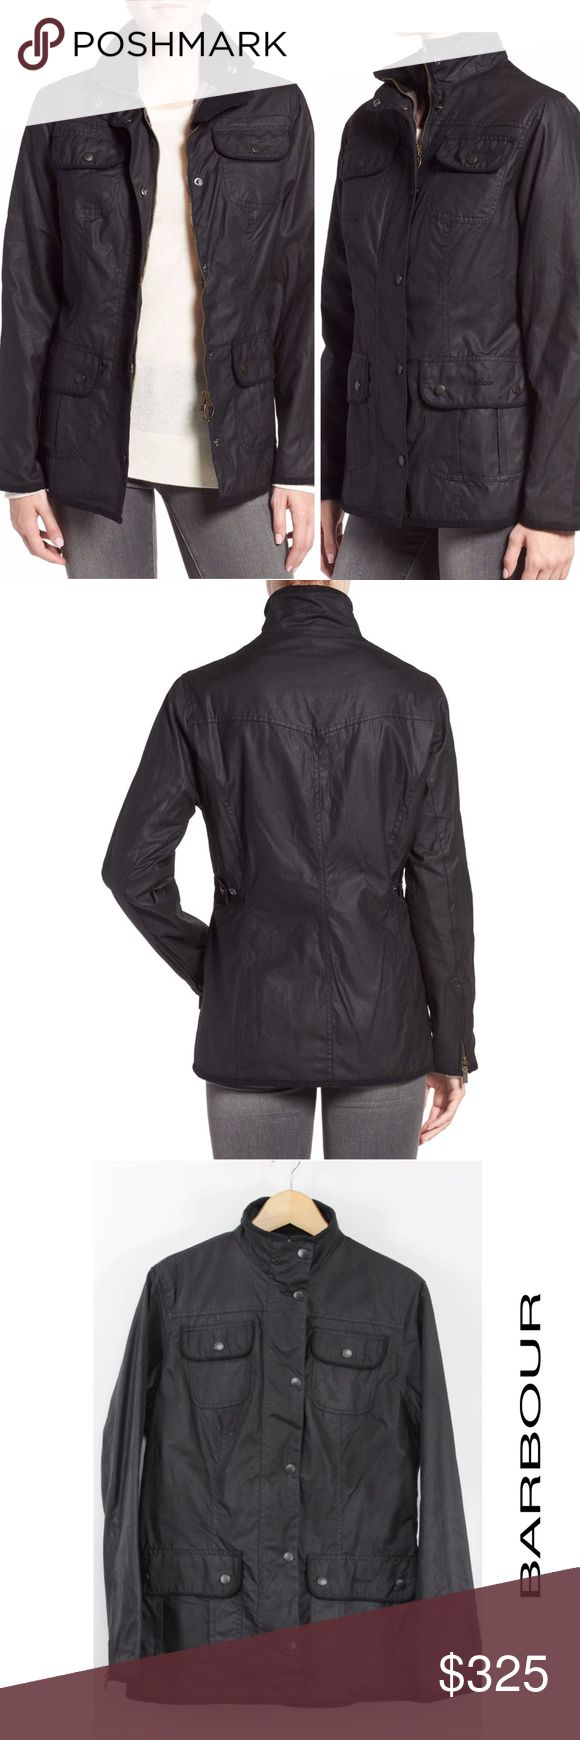 "Barbour Waxed Cotton Utility Jacket Coat Black N53 Barbour Women's Waxed Cotton Utility Jacket Black Front zip/snap closure, Cotton lining, 100% waxed cotton, Spot clean Retails $399 Size: 10 US 40 EU 14 UK Shoulder: 17""  Sleeves: 24.5""  Armpit to Armpit: 22""  Waist: 18.25""  Length: 28""  Color: Black Pattern: Solid Material: 100% waxed cotton Country: Moldova Style #: 761650 Care: Spot Clean WT: 2.01 CSKU: N53; 80 Jacket on model for styling/fit reference only. Hanging Item for Sale/Listed…"